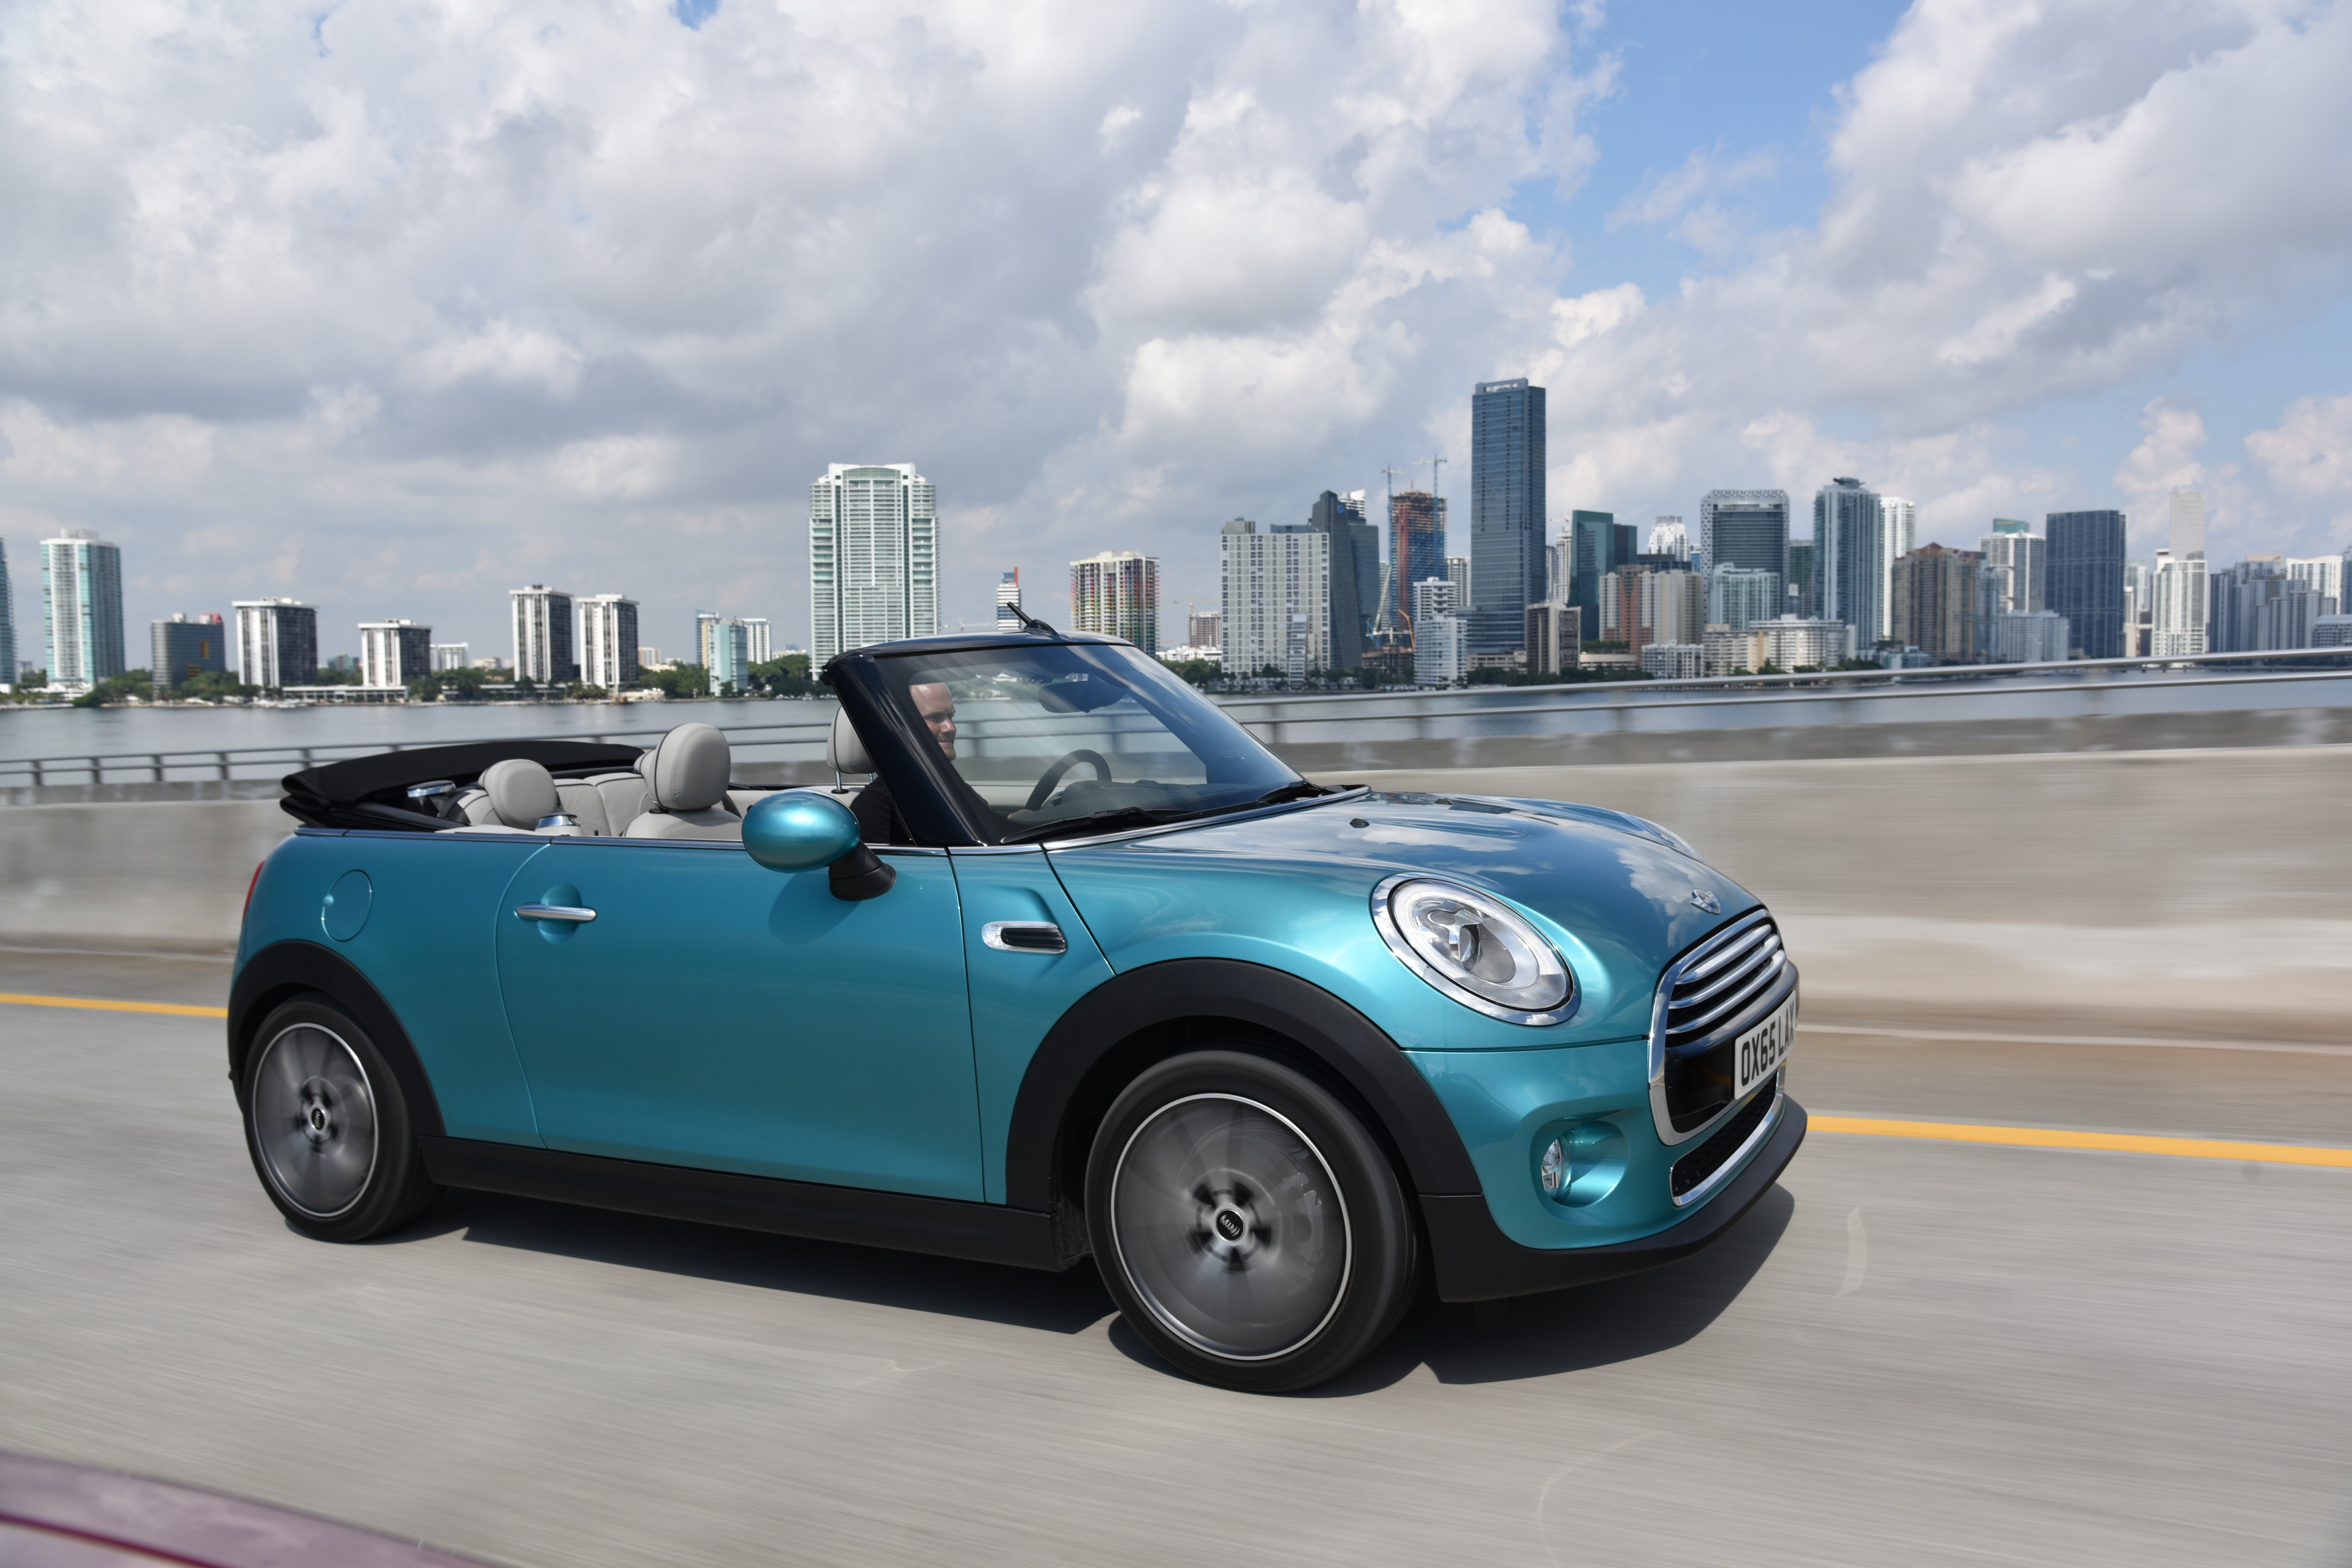 2016 mini convertible launched in caribbean aqua paint ahead of tokyo debut autoevolution. Black Bedroom Furniture Sets. Home Design Ideas